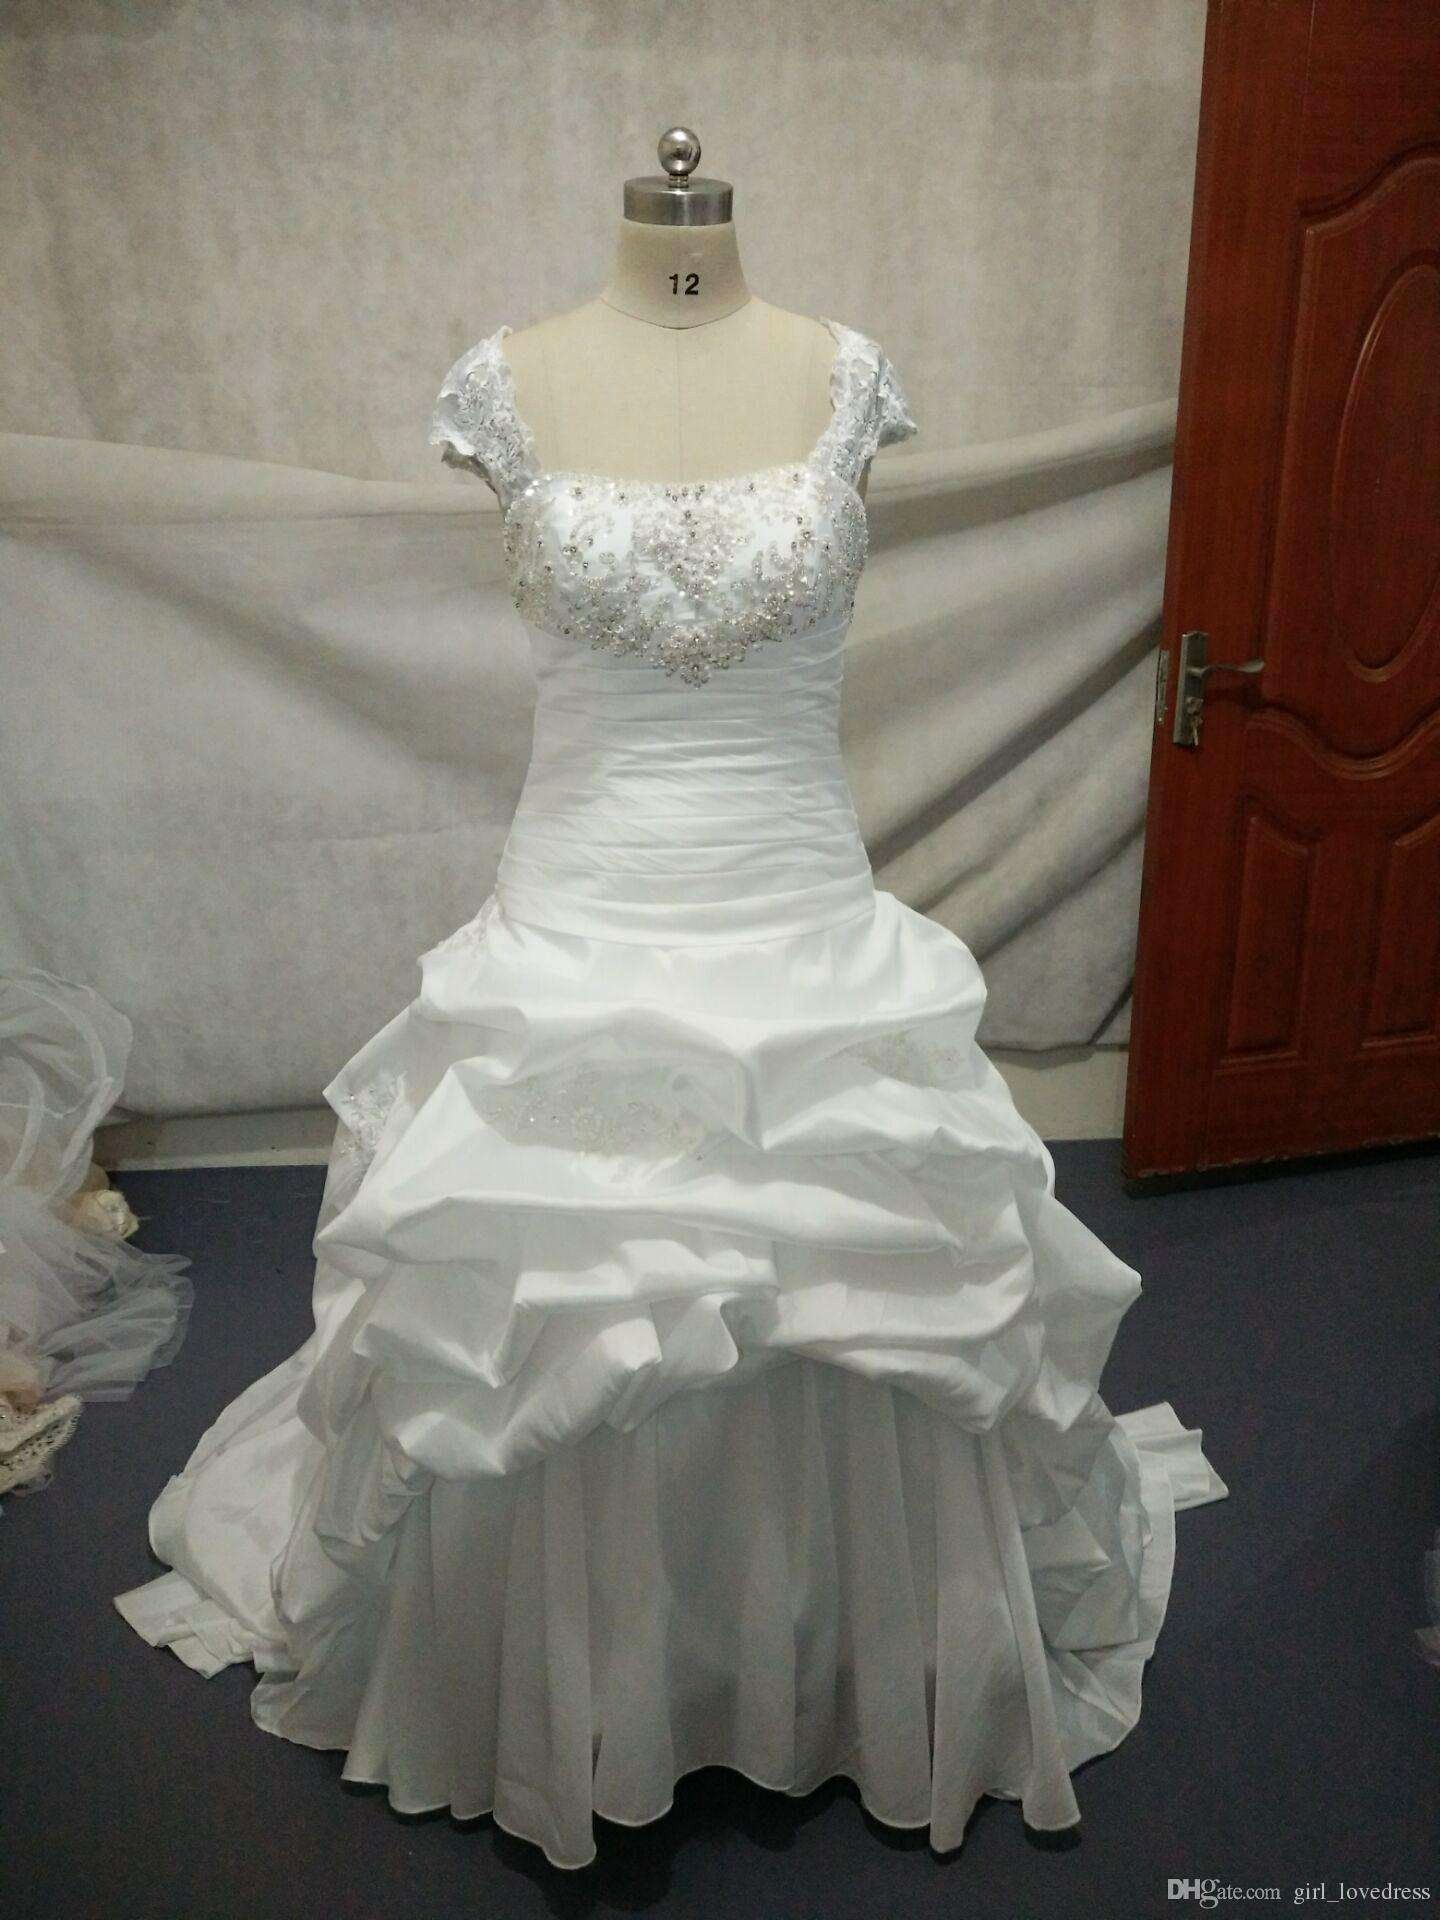 Yes You Can Wash And Dry Your Wedding Dress At Home In 2020 Clean Wedding Dress Wedding Dresses Diy Wedding Dress